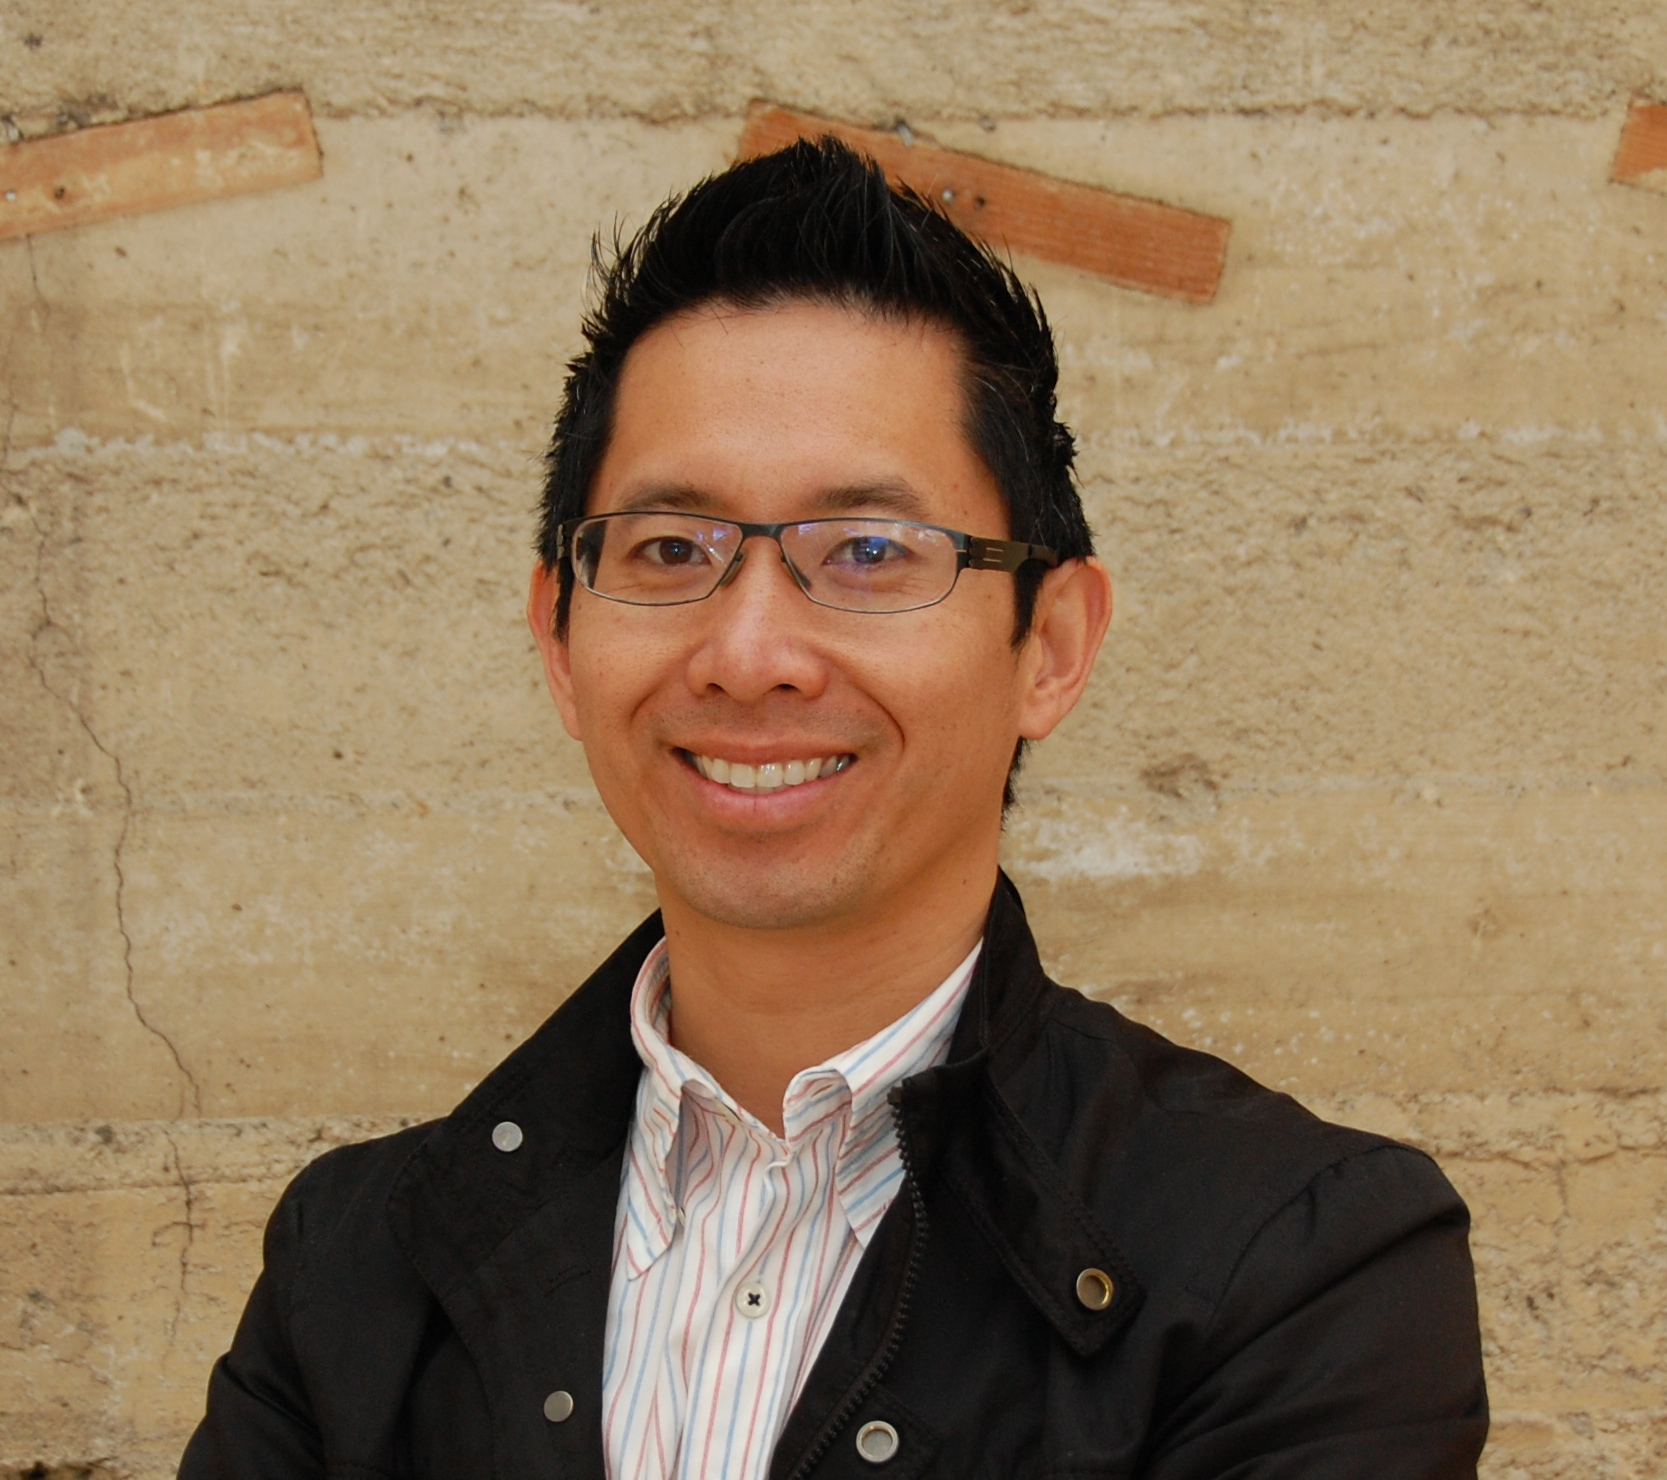 Peter Pham headshot